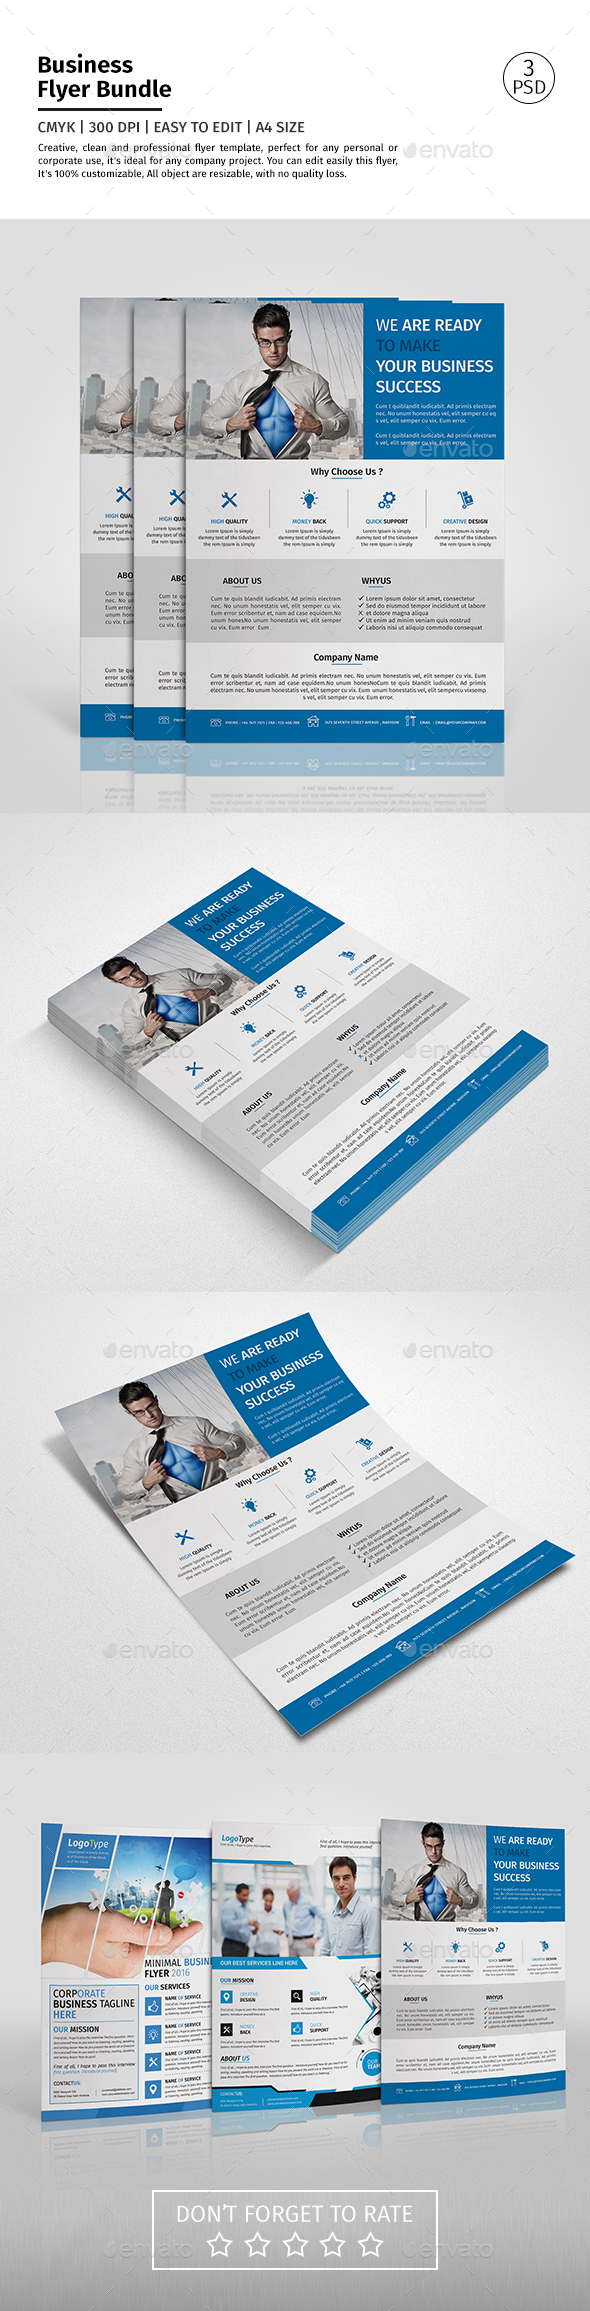 Corporate Flyer Bundle 02 - Corporate Flyers